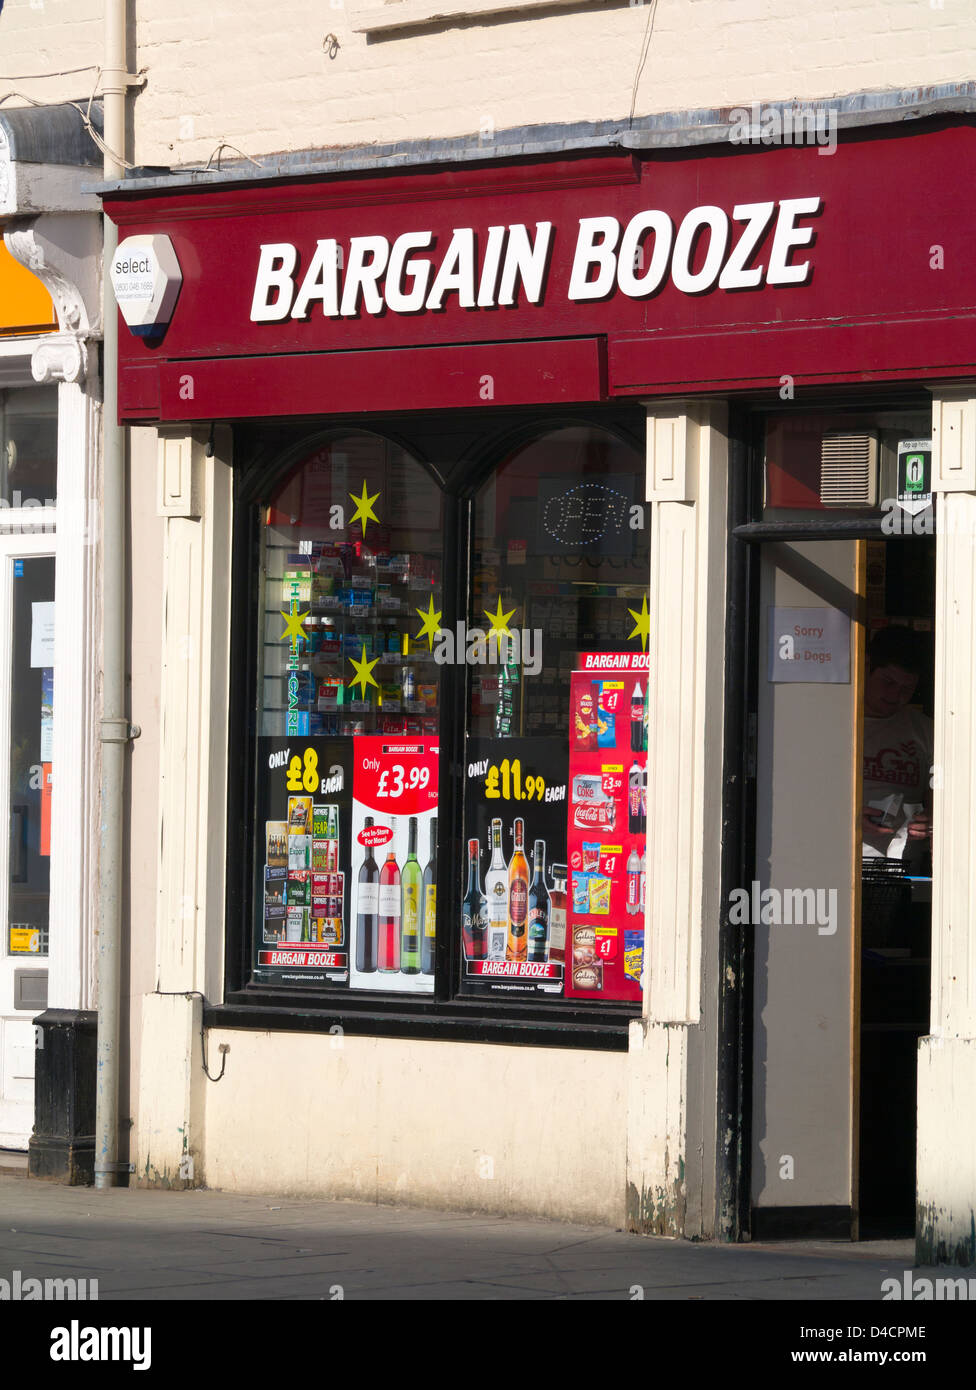 Bargain Booze off licence shop in Brecon Wales UK. - Stock Image